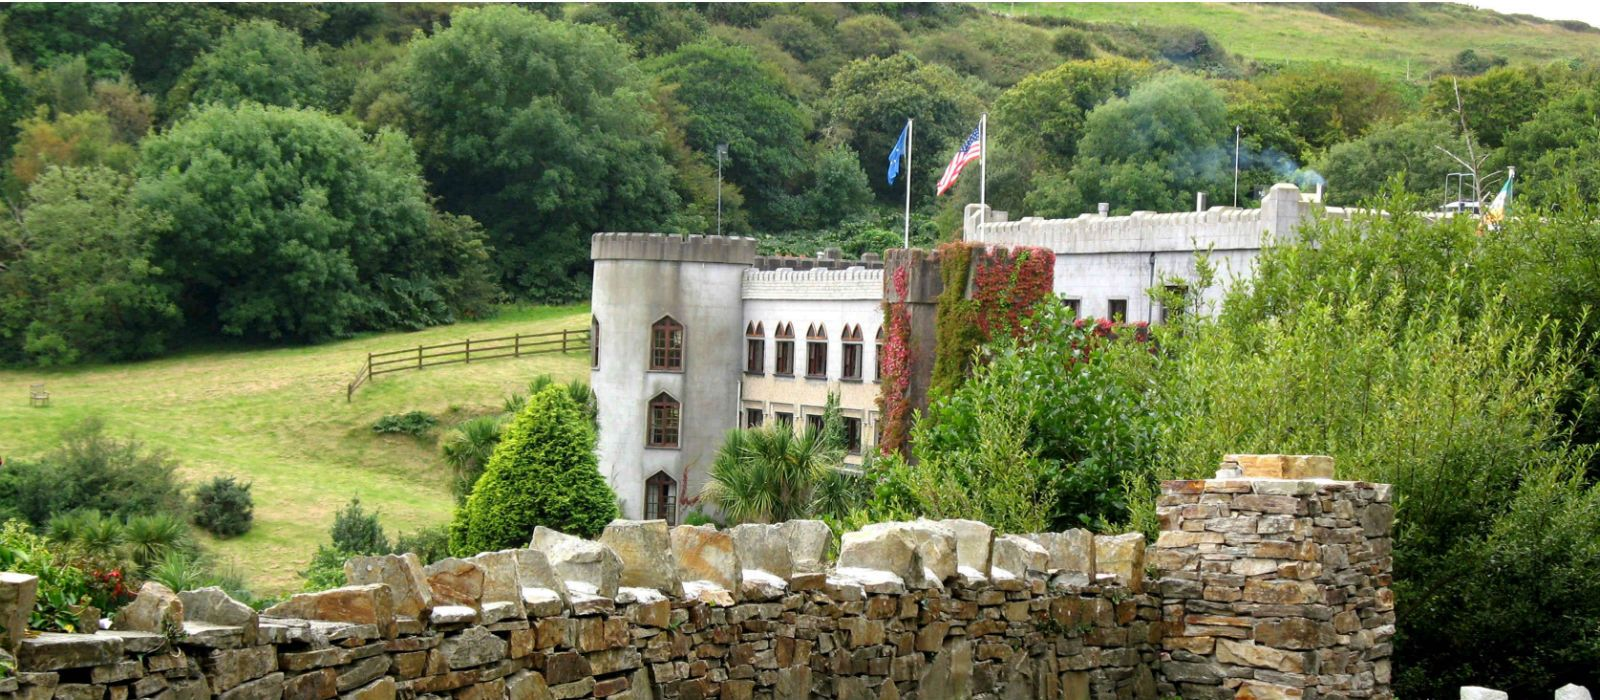 Abbyglen Castle & Gardens, accommodation by Discover Ireland Tours Destination Management Company